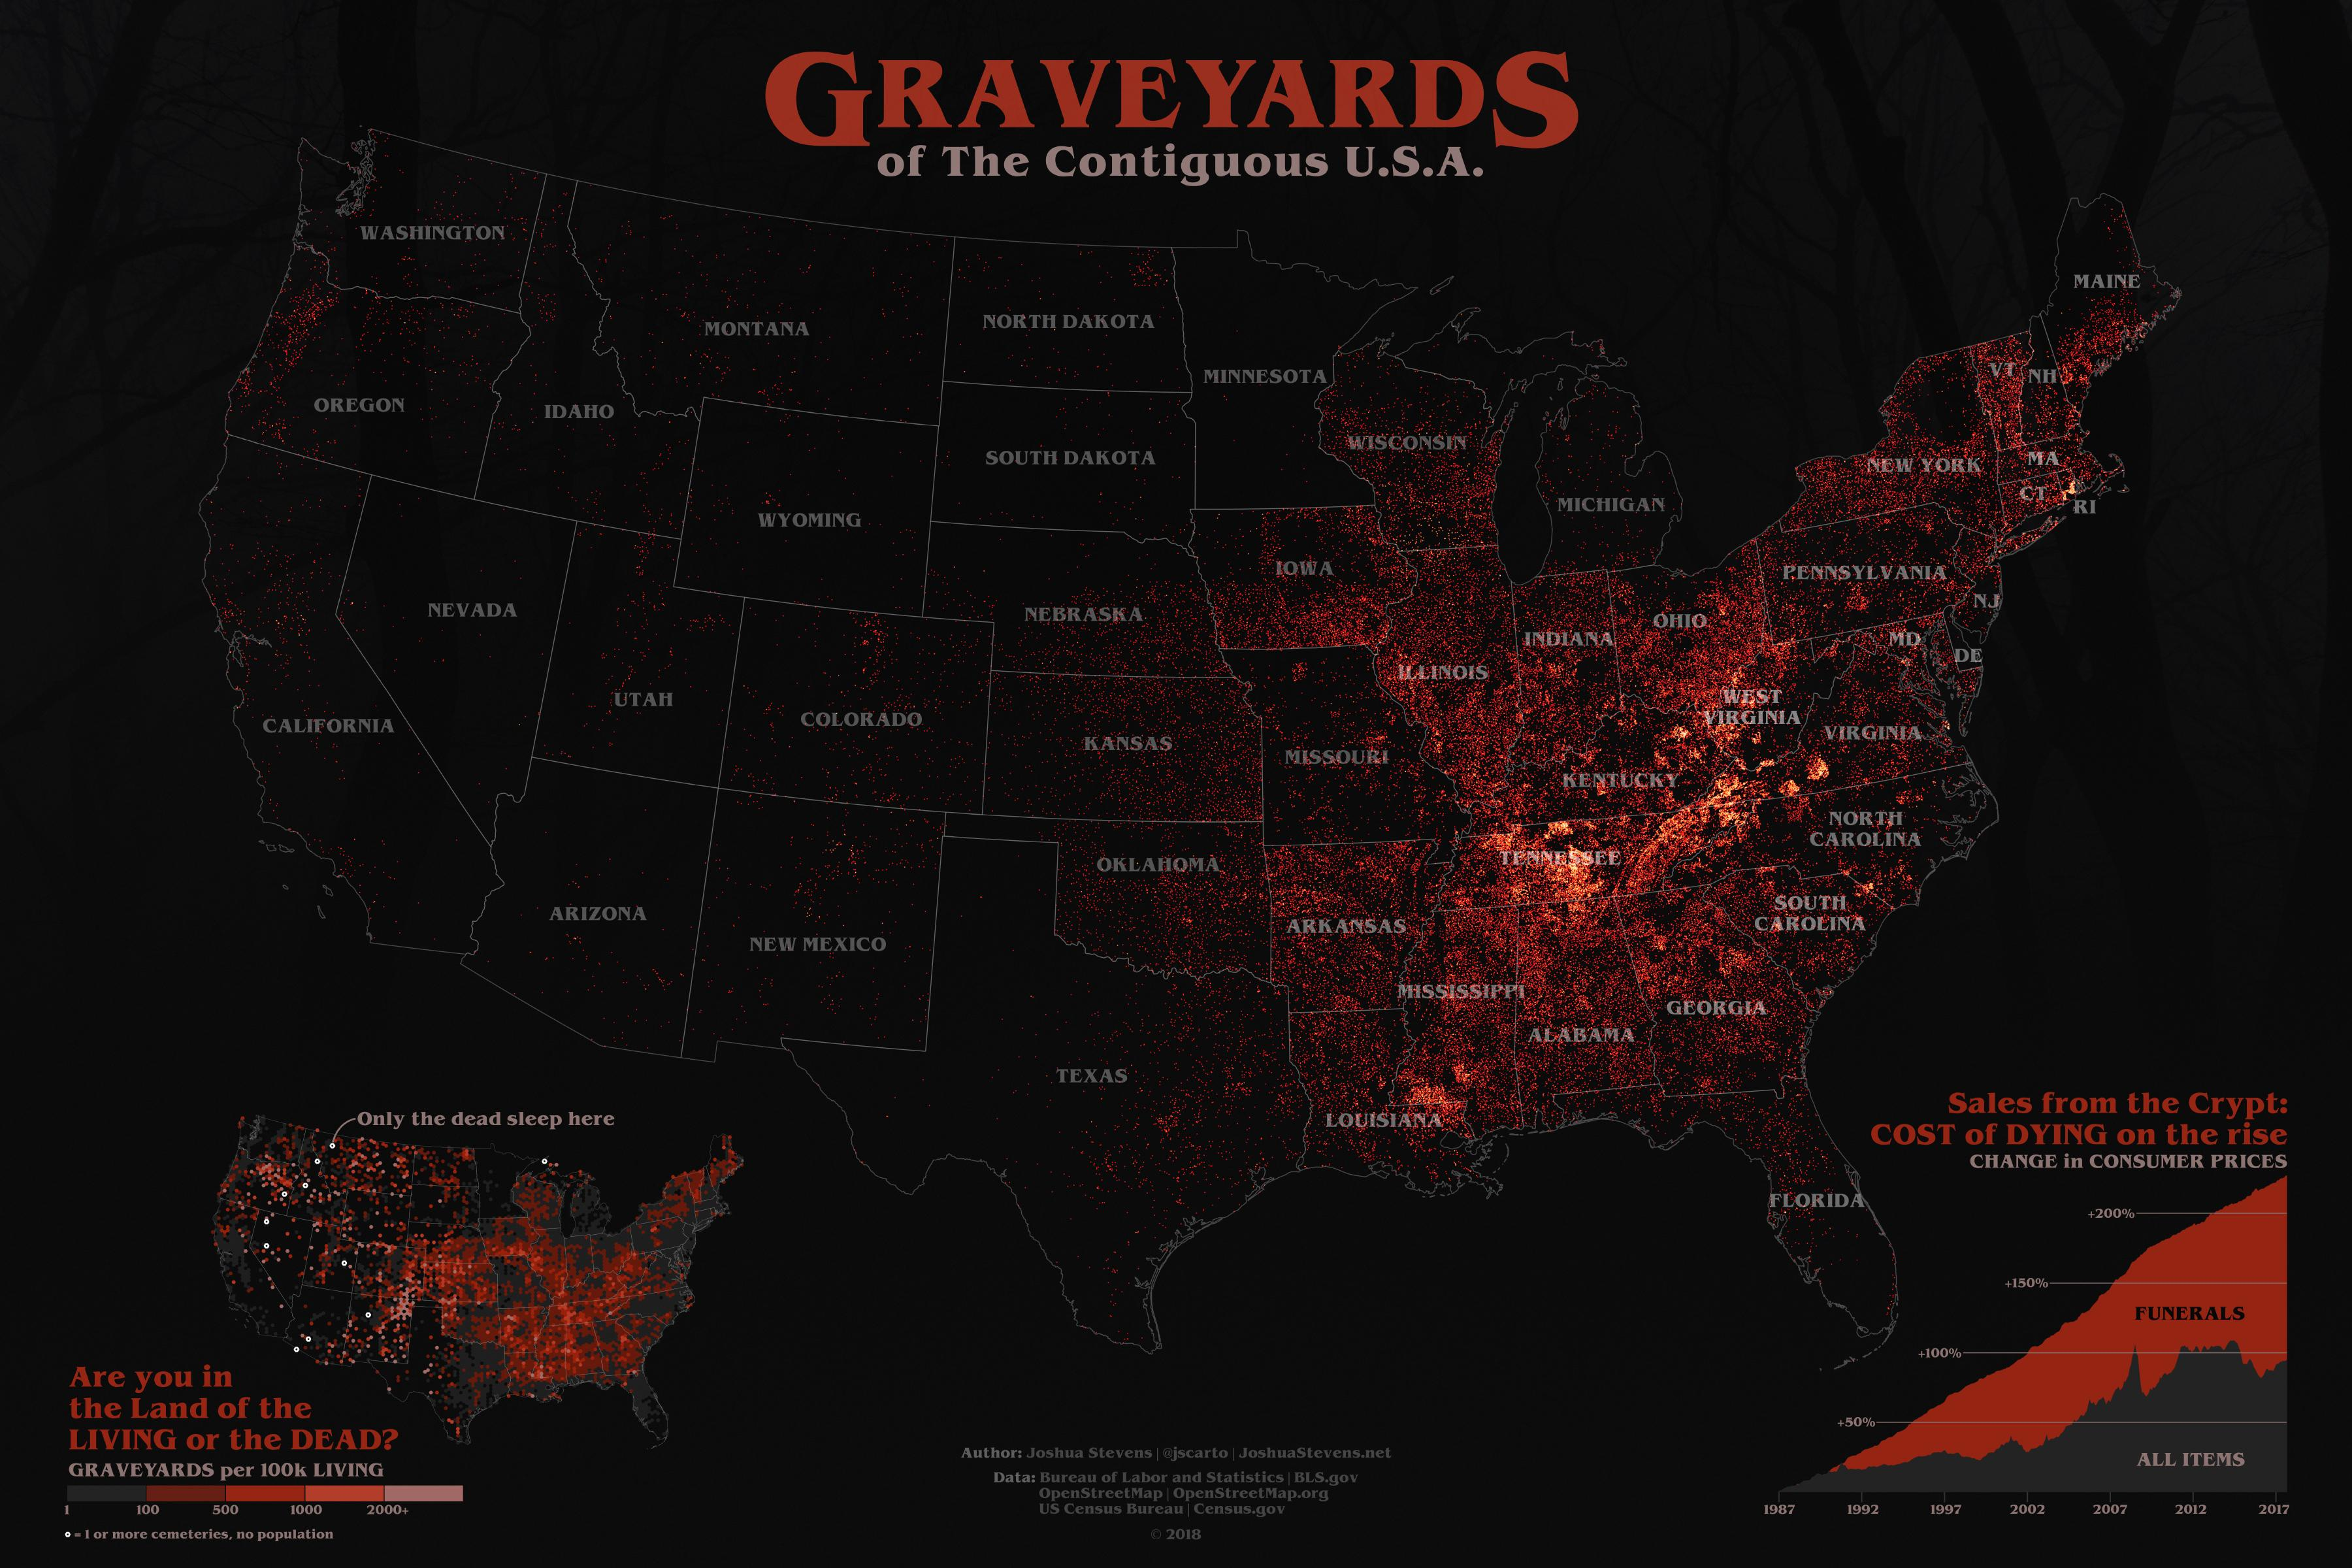 Graveyards of the contiguous United States